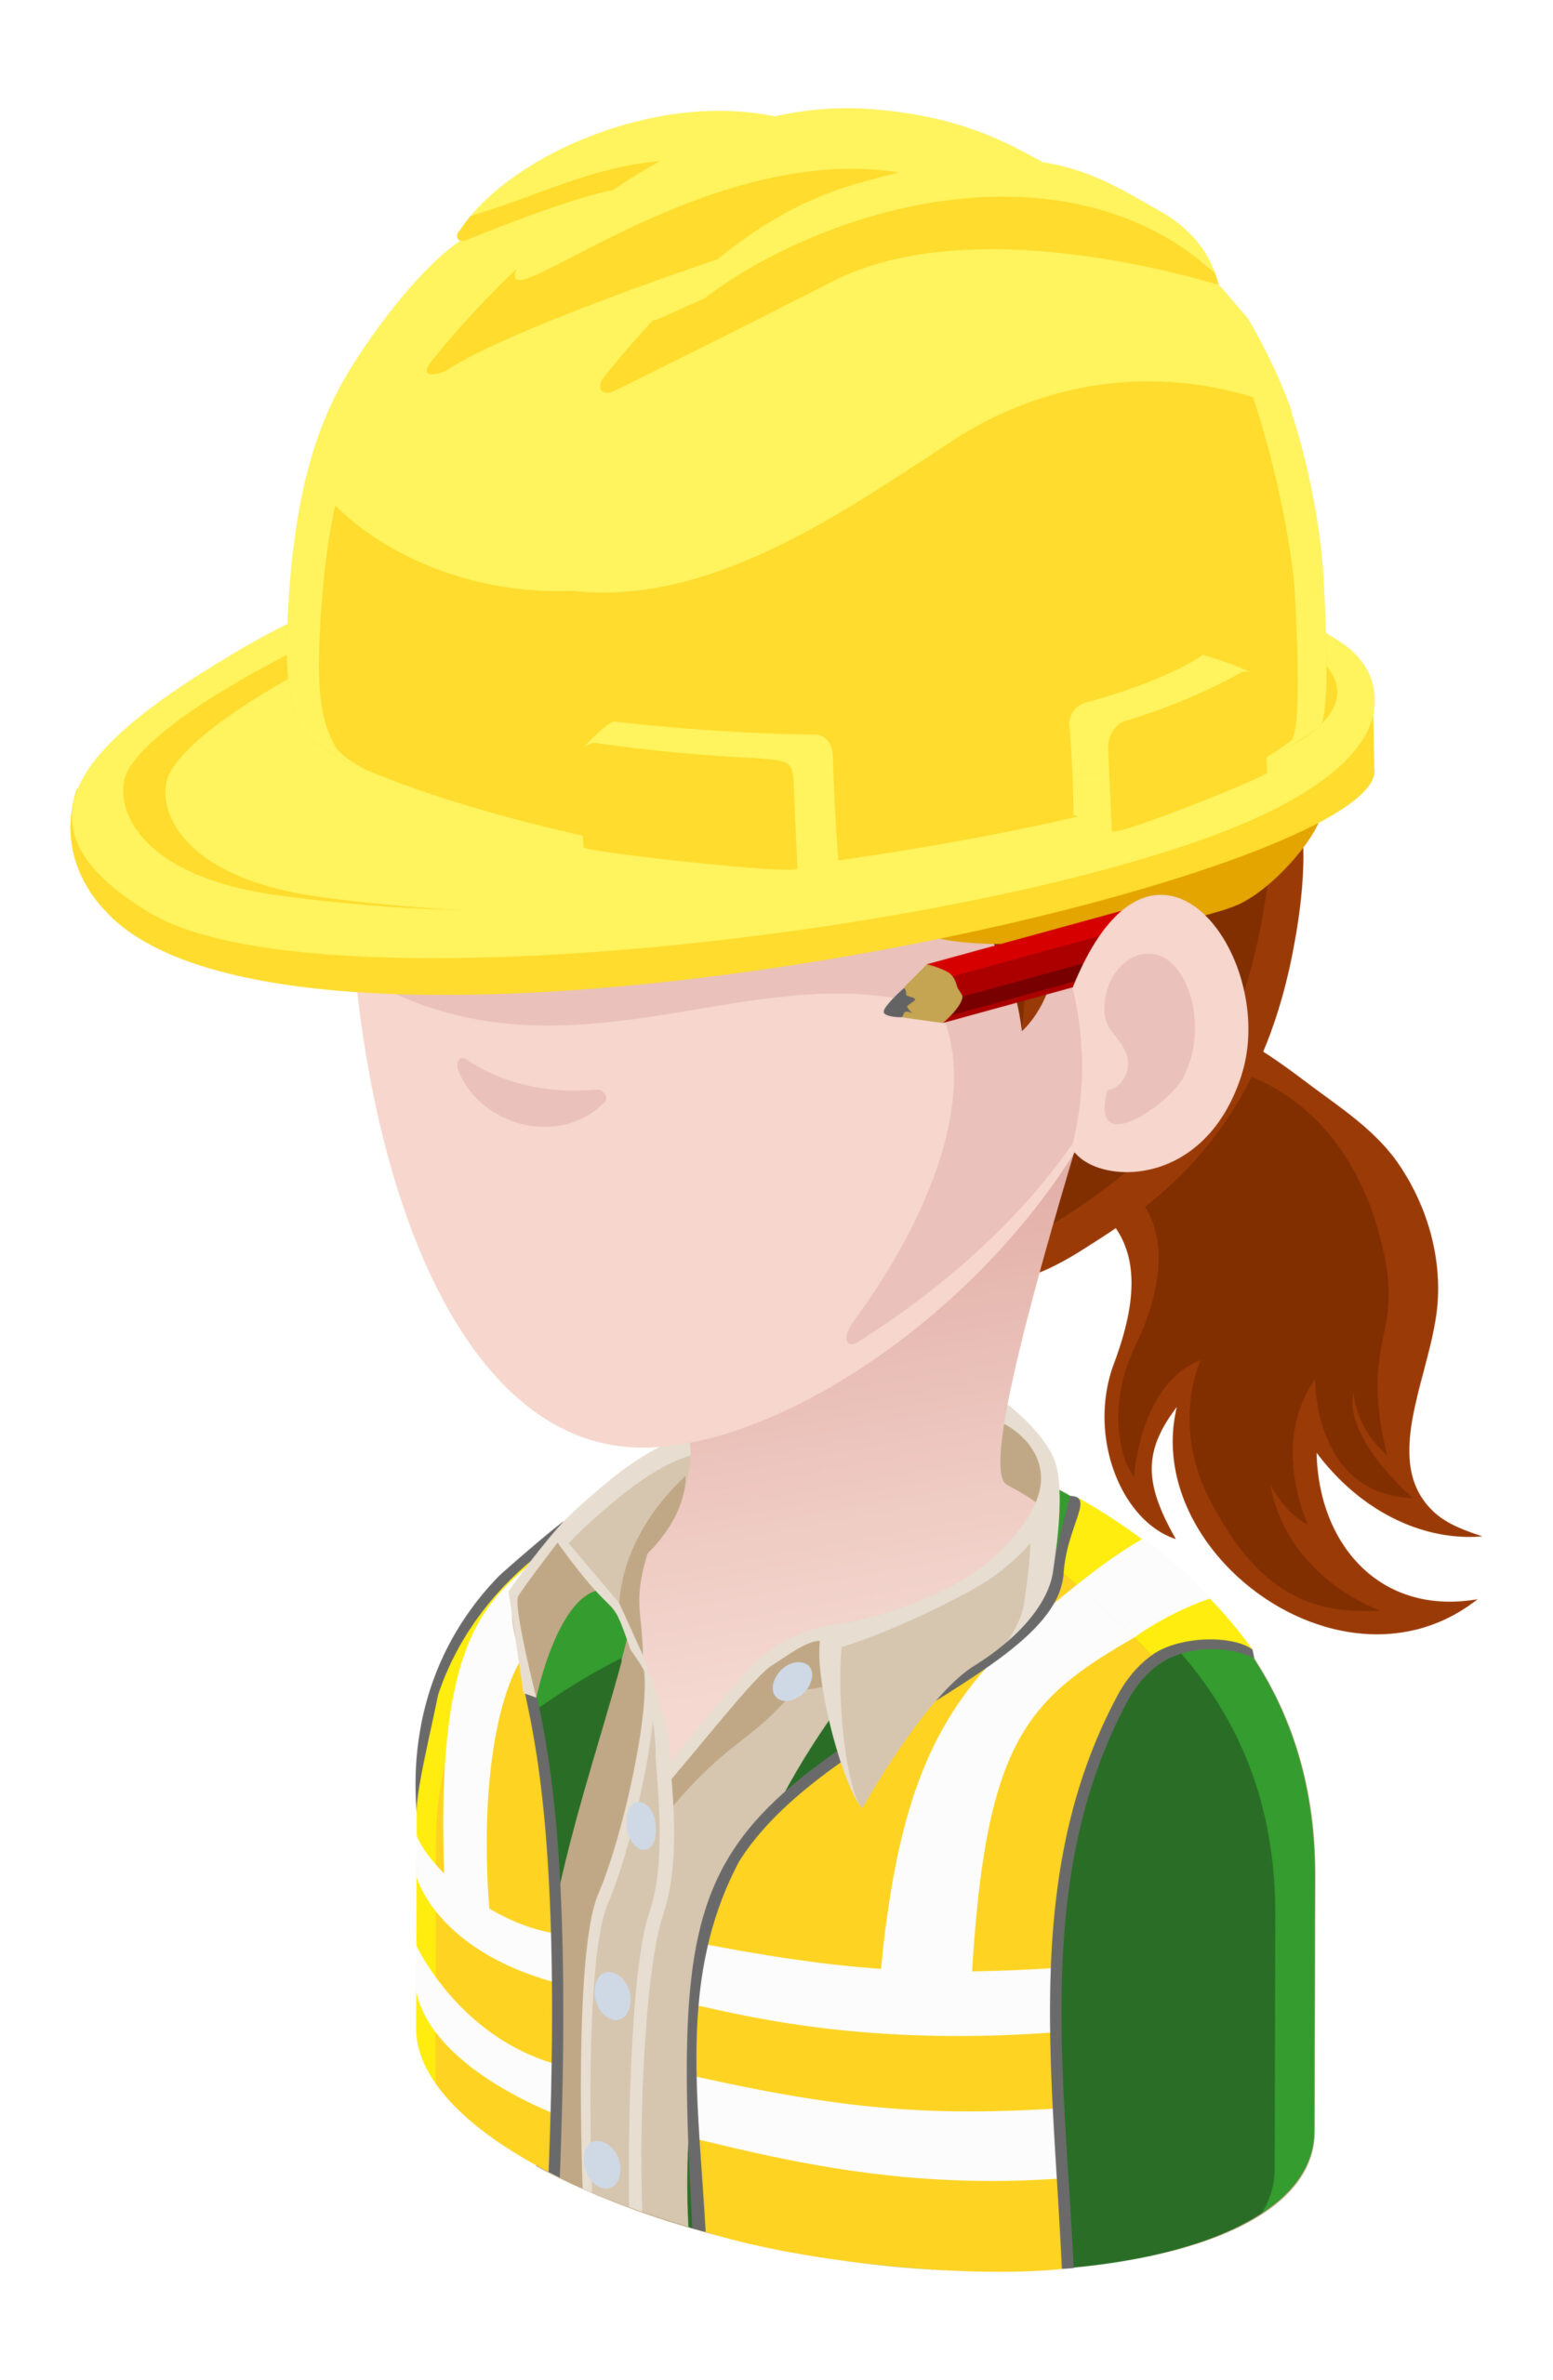 Cartoon woman who has brown hair, wearing yellow hard hat, green shirt, yellow hi-vis vest, with red pencil behind her ear